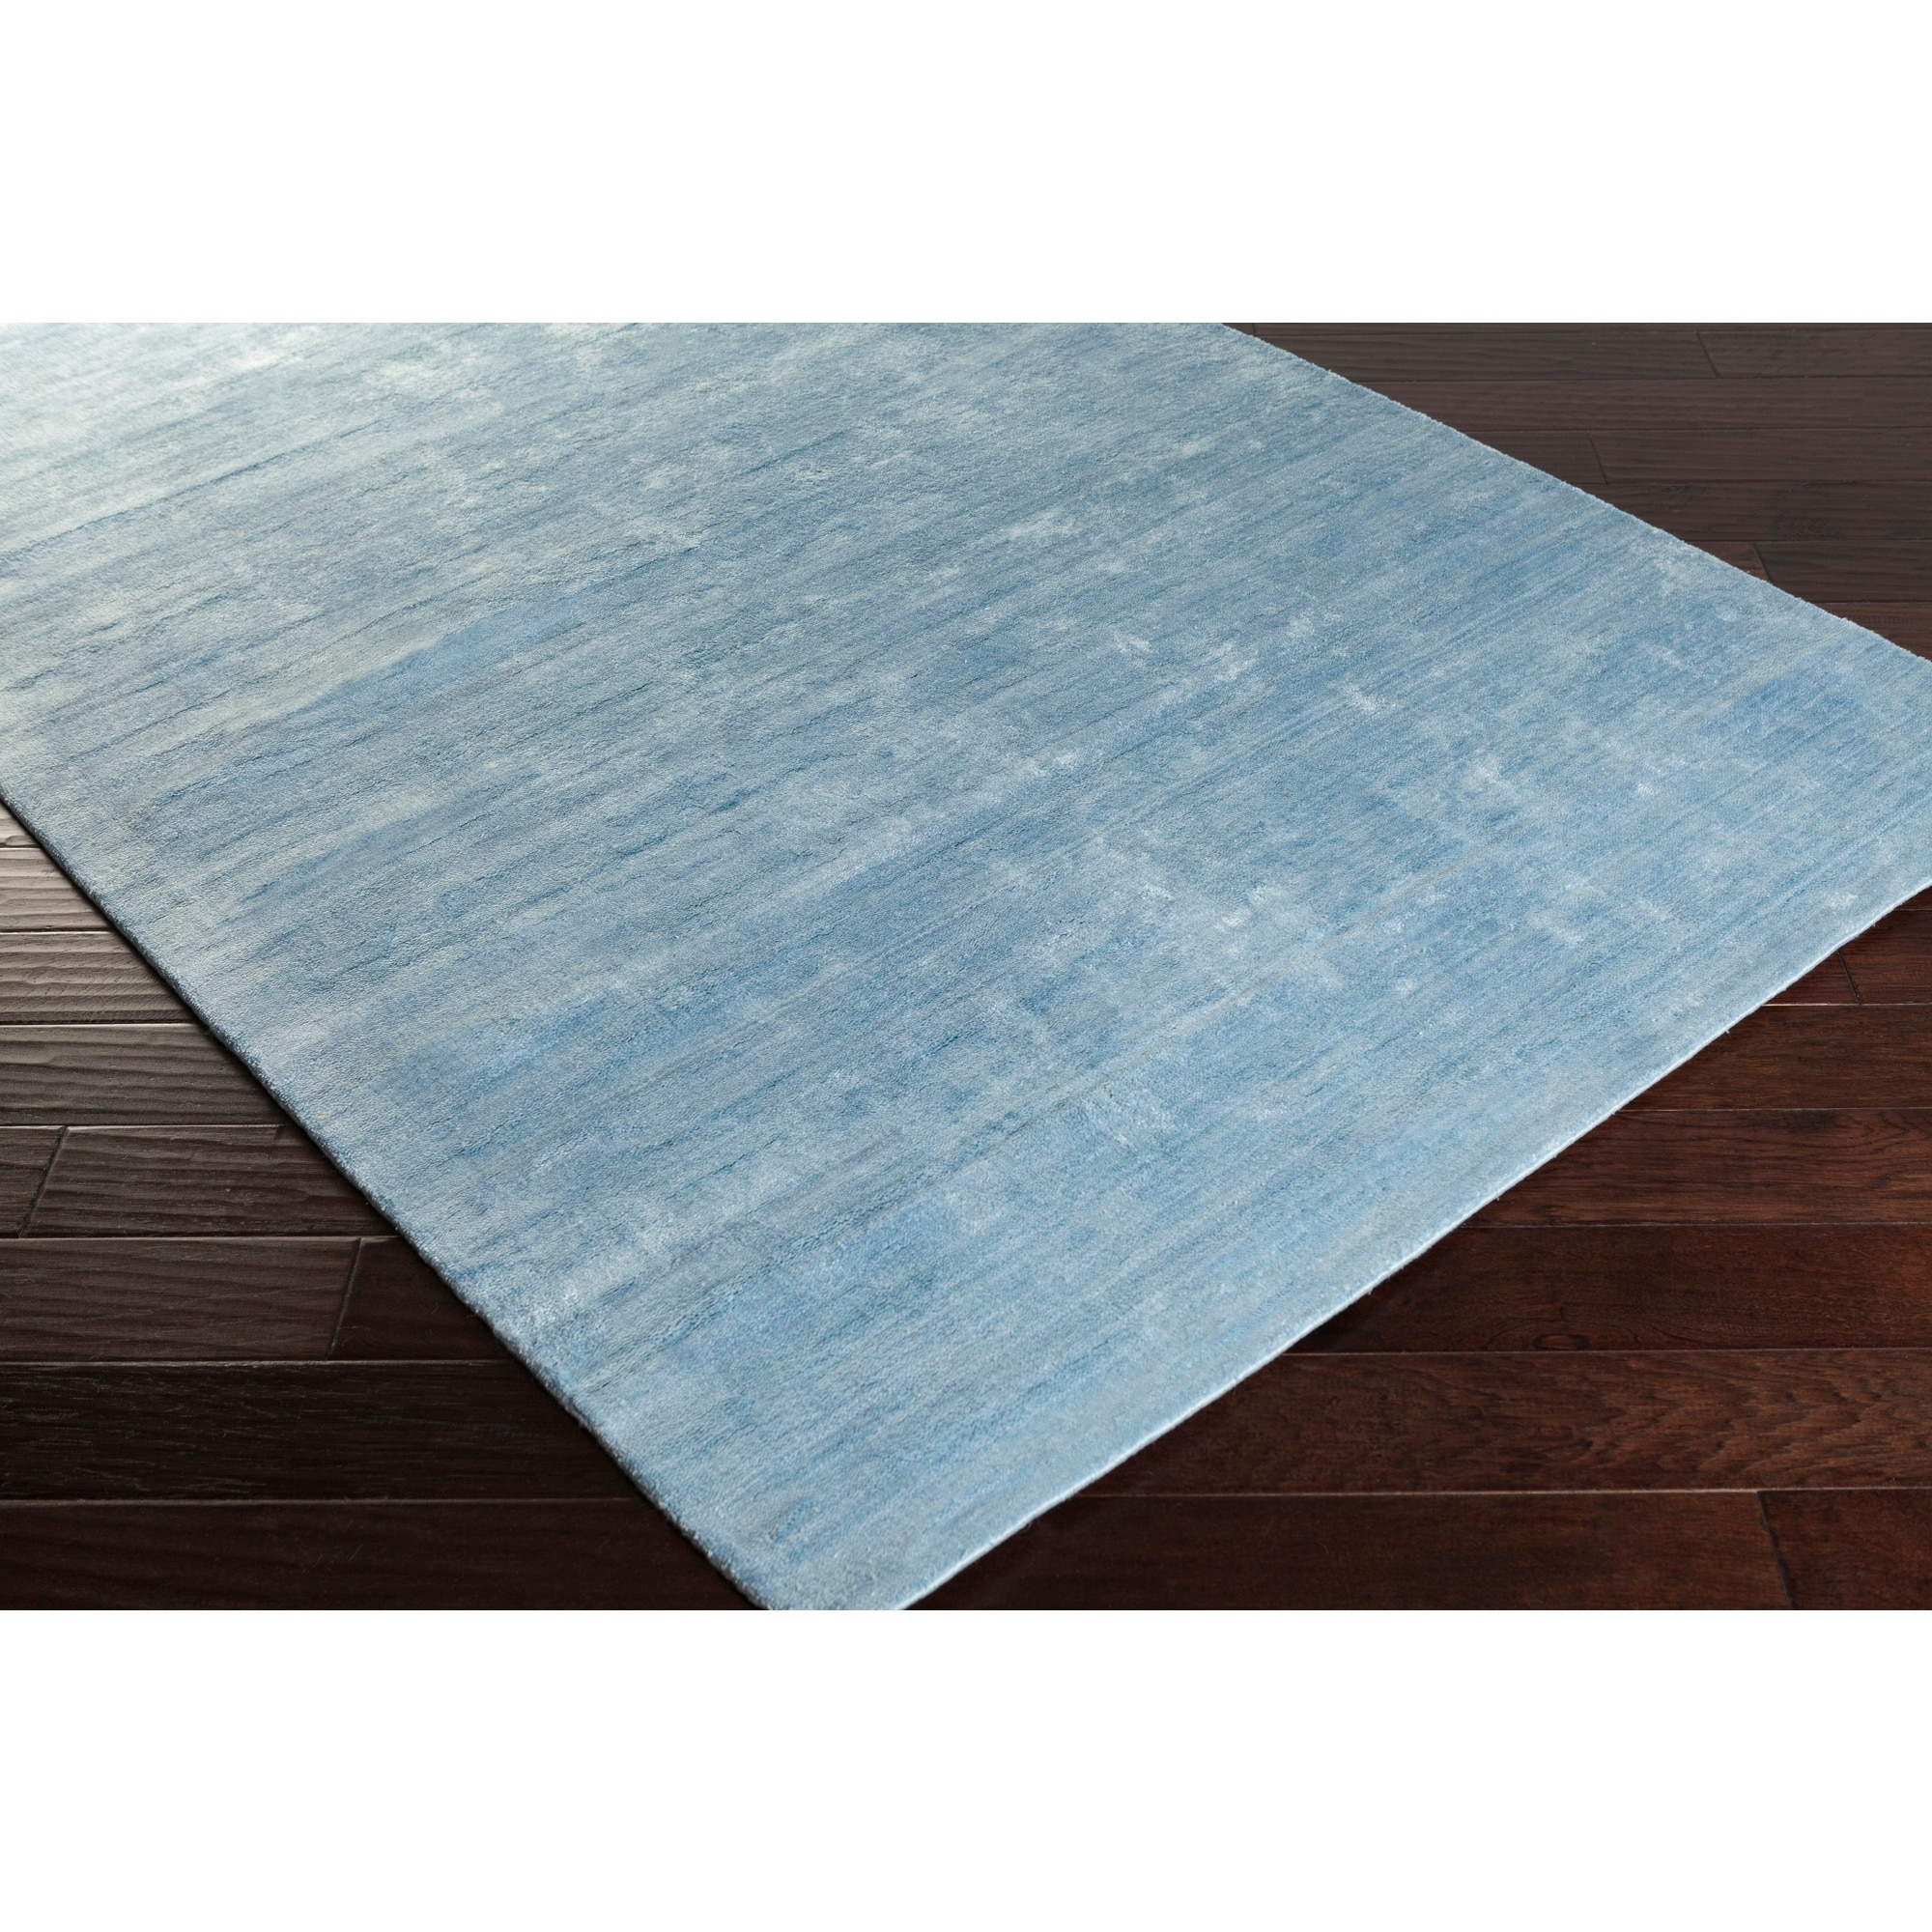 Shop handmade pedro solid rayon from bamboo area rug 8 x 10 on sale free shipping today overstock com 9775745